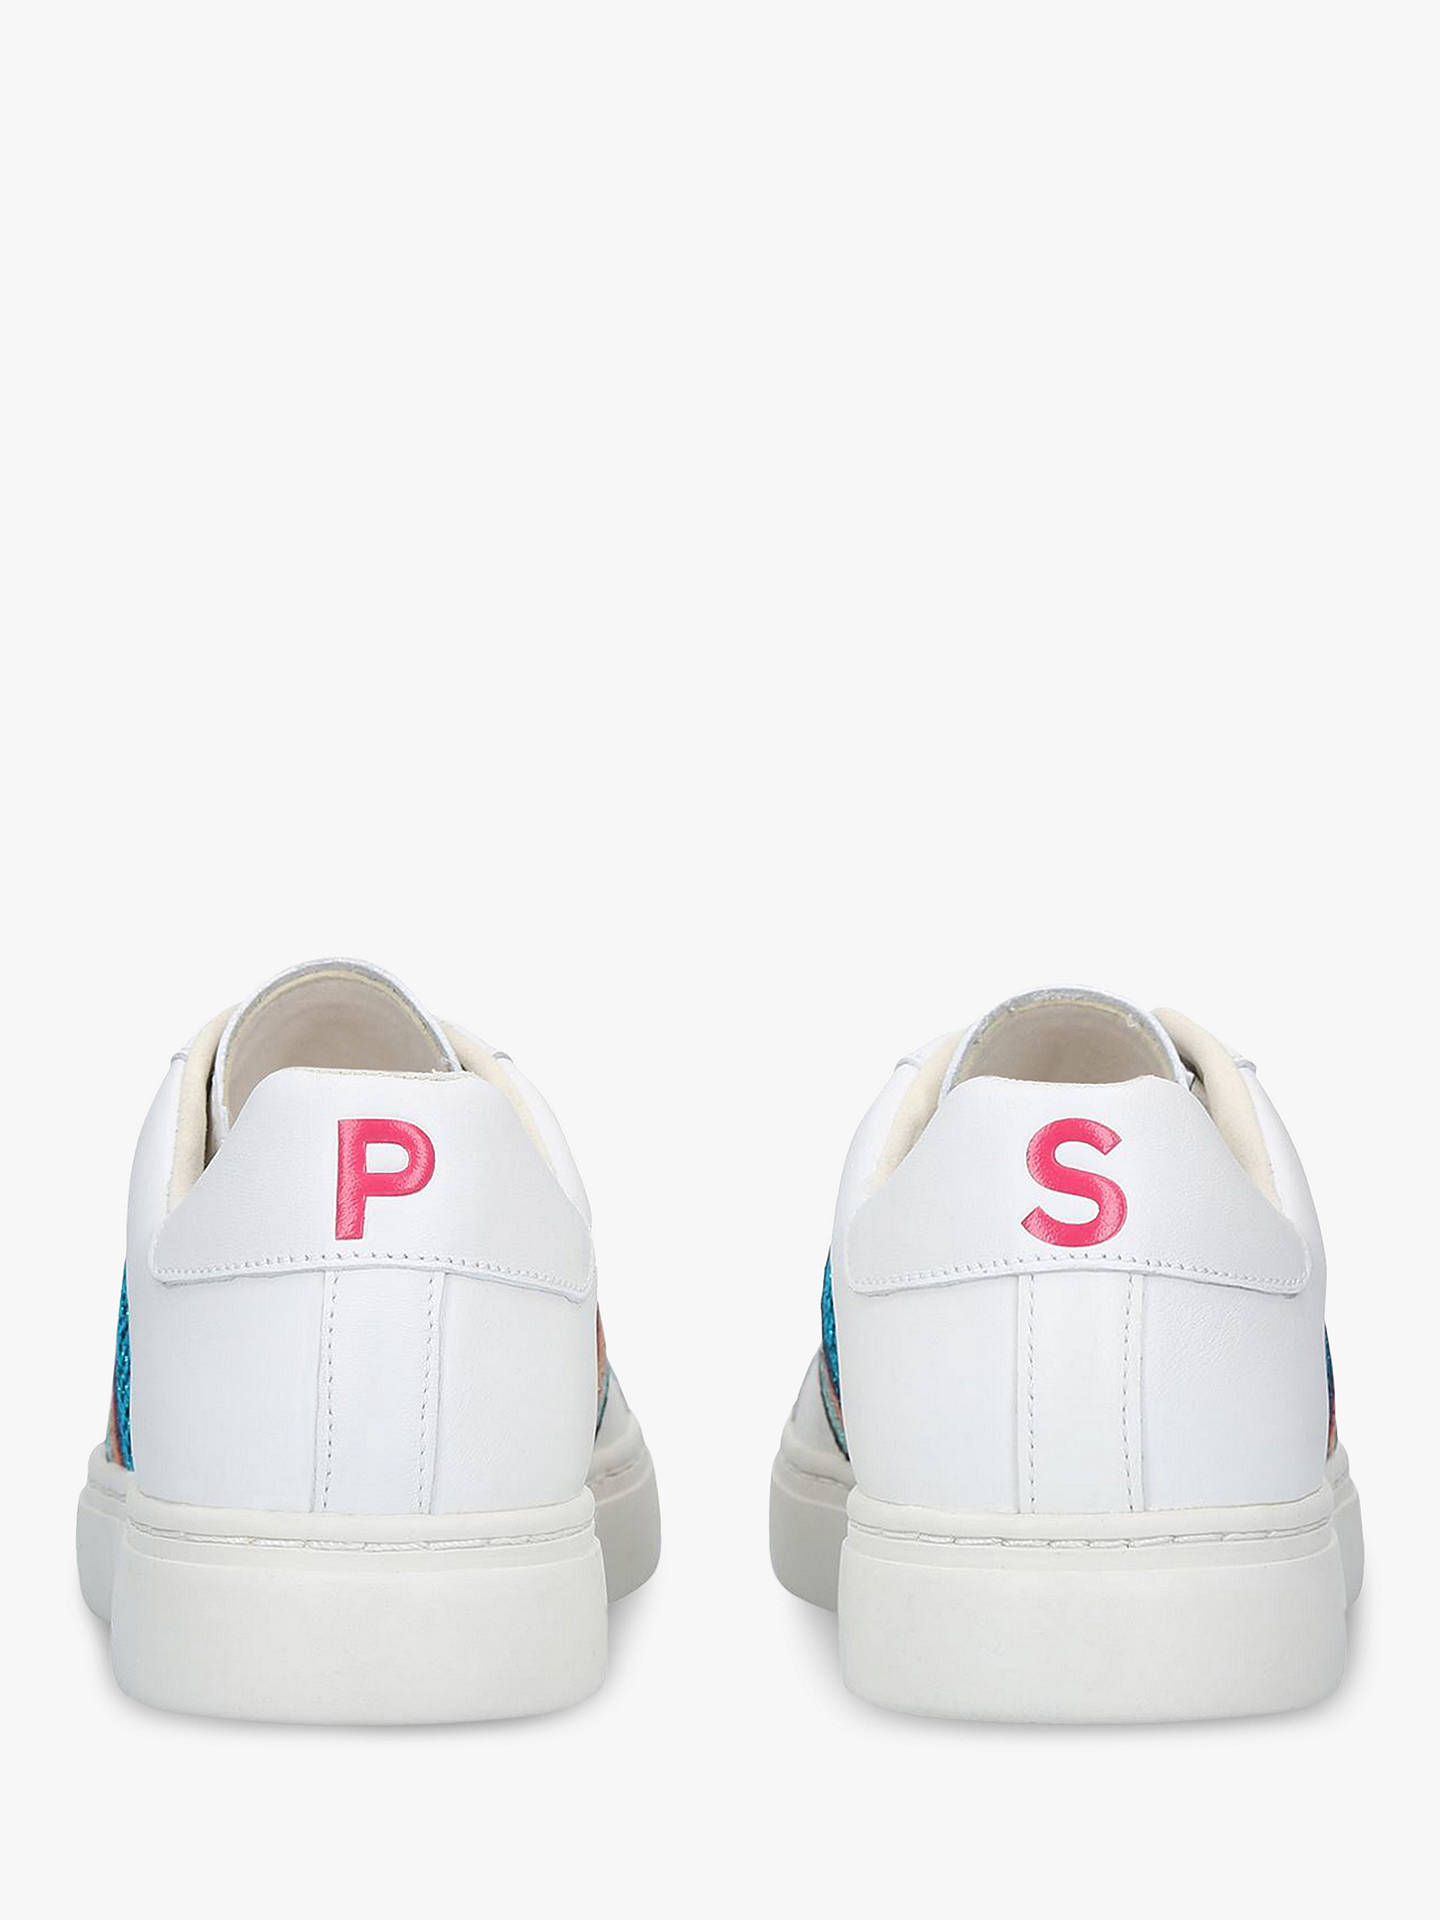 BuyPaul Smith Lapin Stripe Lace Up Trainers, White/Multi Leather, 2 Online at johnlewis.com